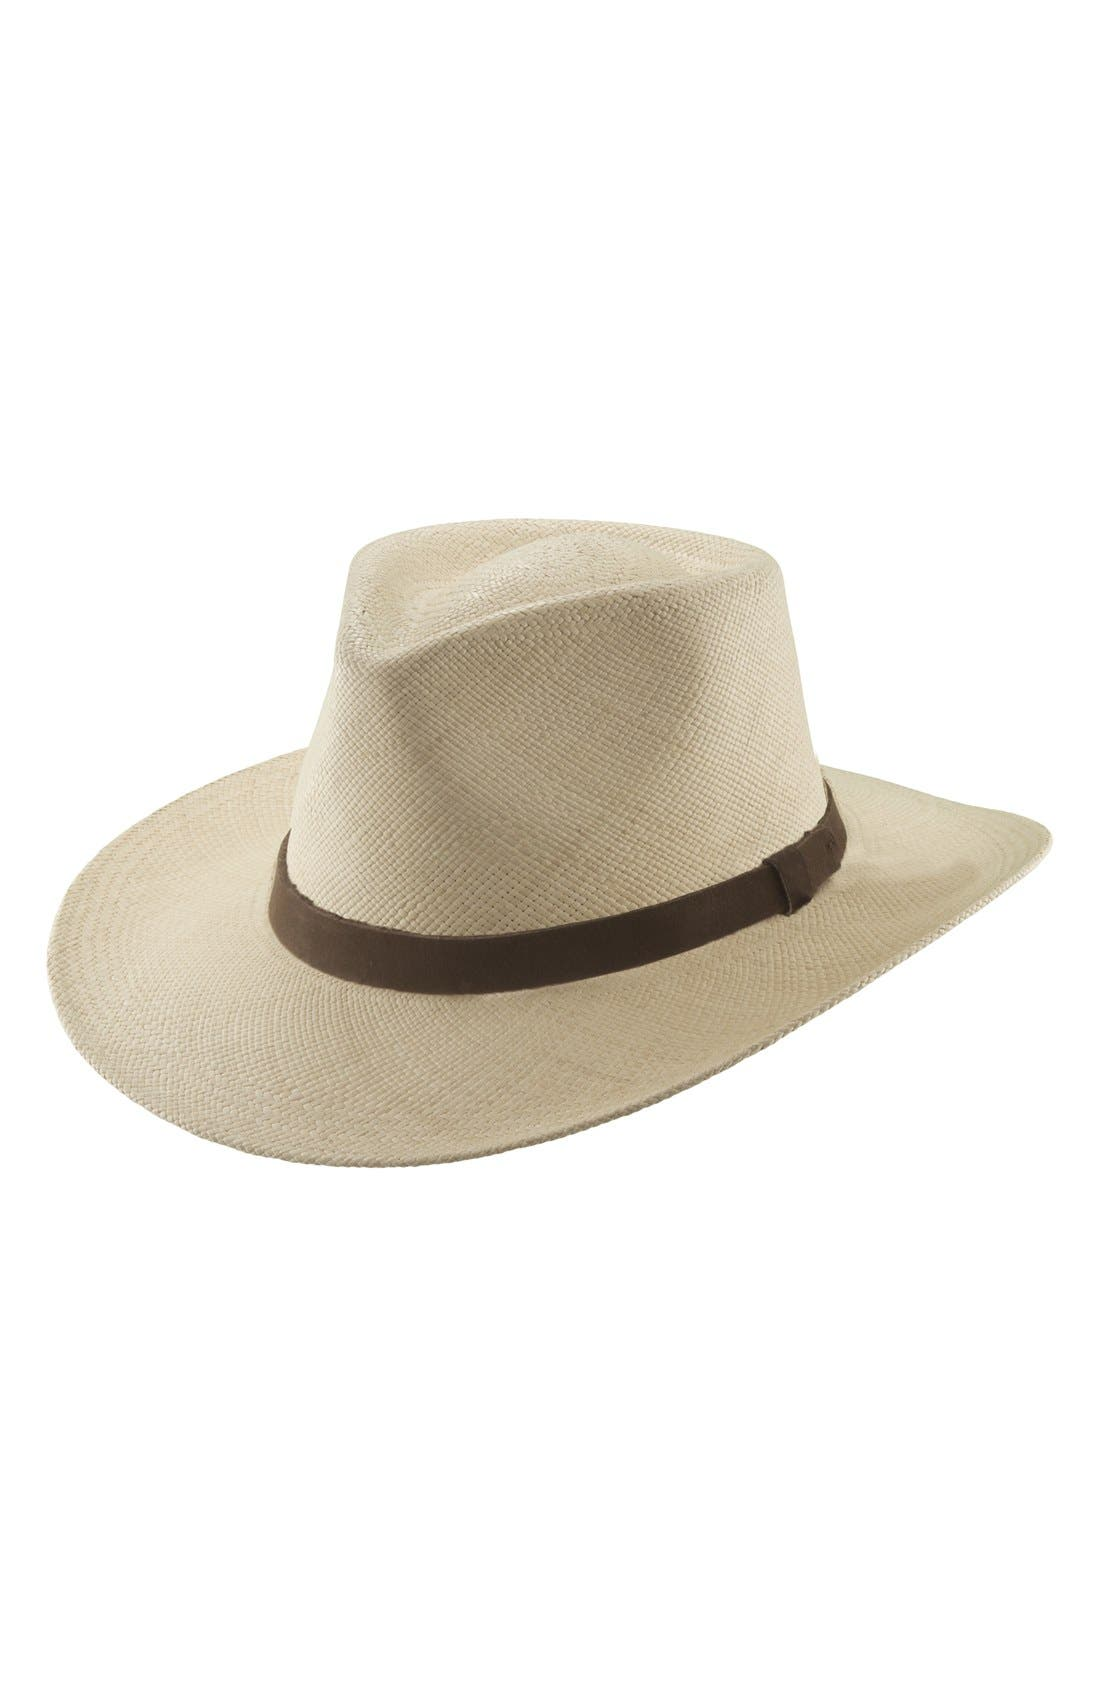 Straw Outback Hat,                         Main,                         color, 101